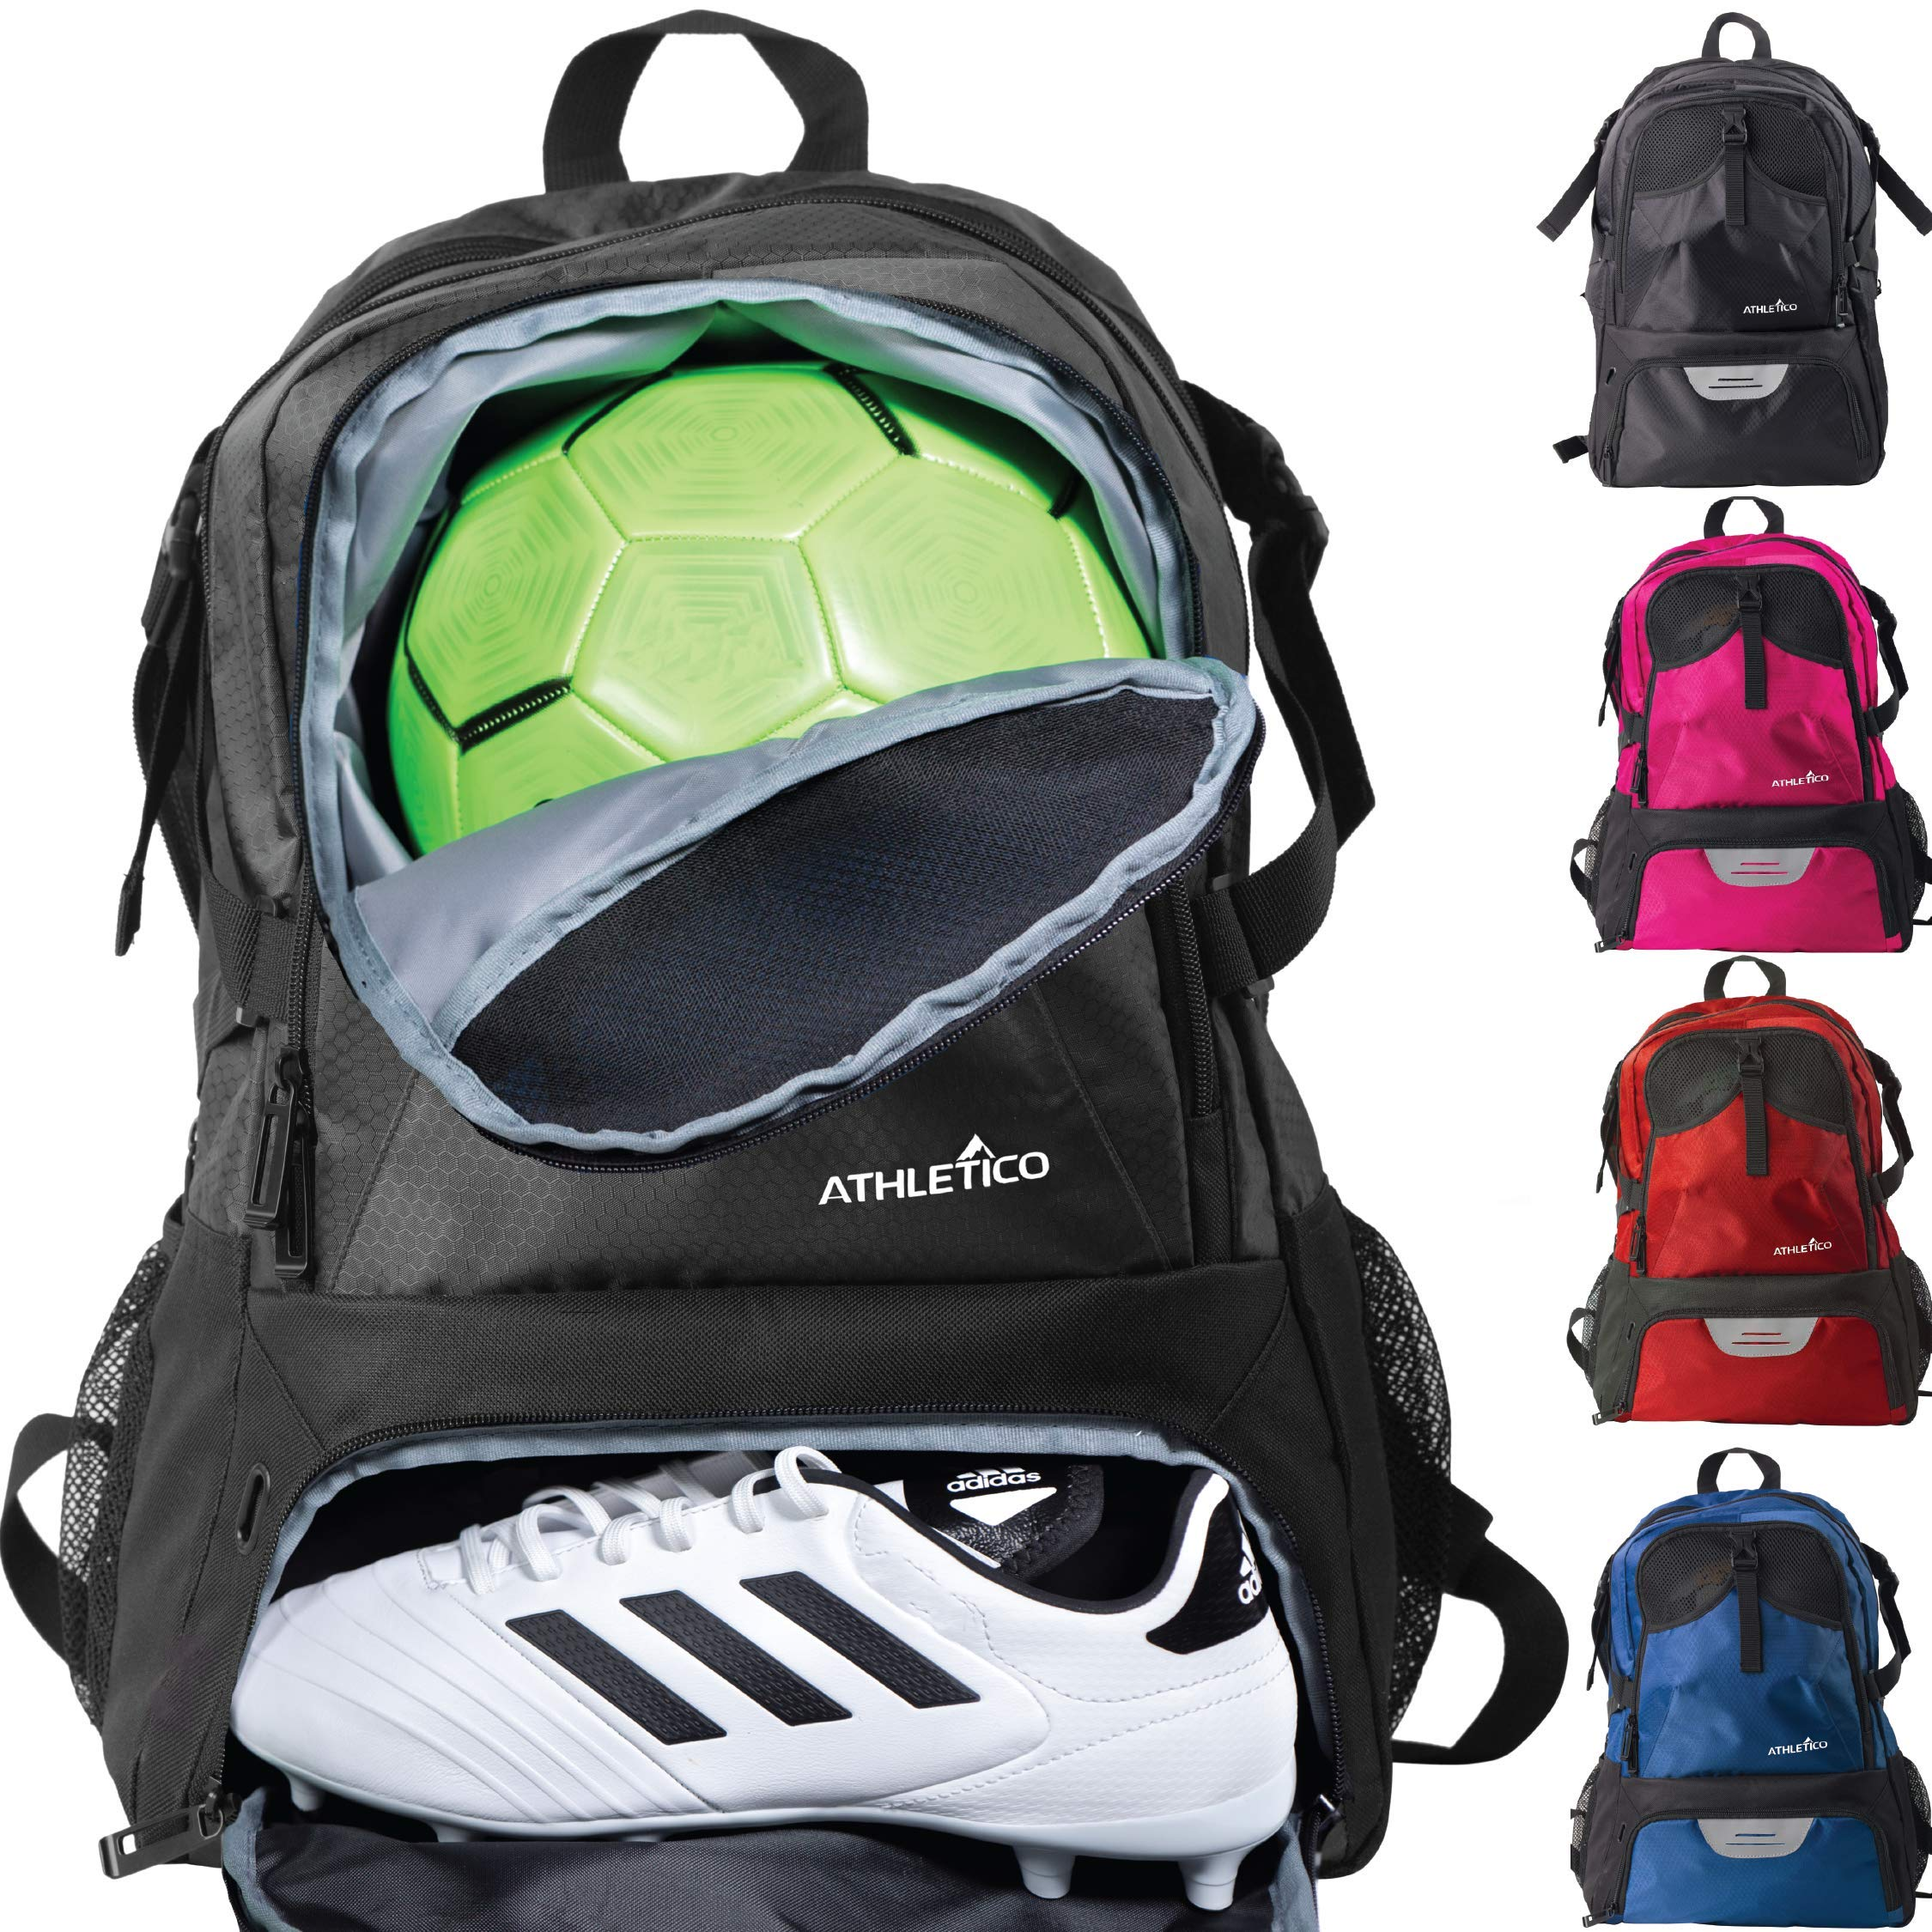 Athletico National Soccer Bag - Backpack for Soccer, Basketball & Football Includes Separate Cleat and Ball Holder (Black) by Athletico